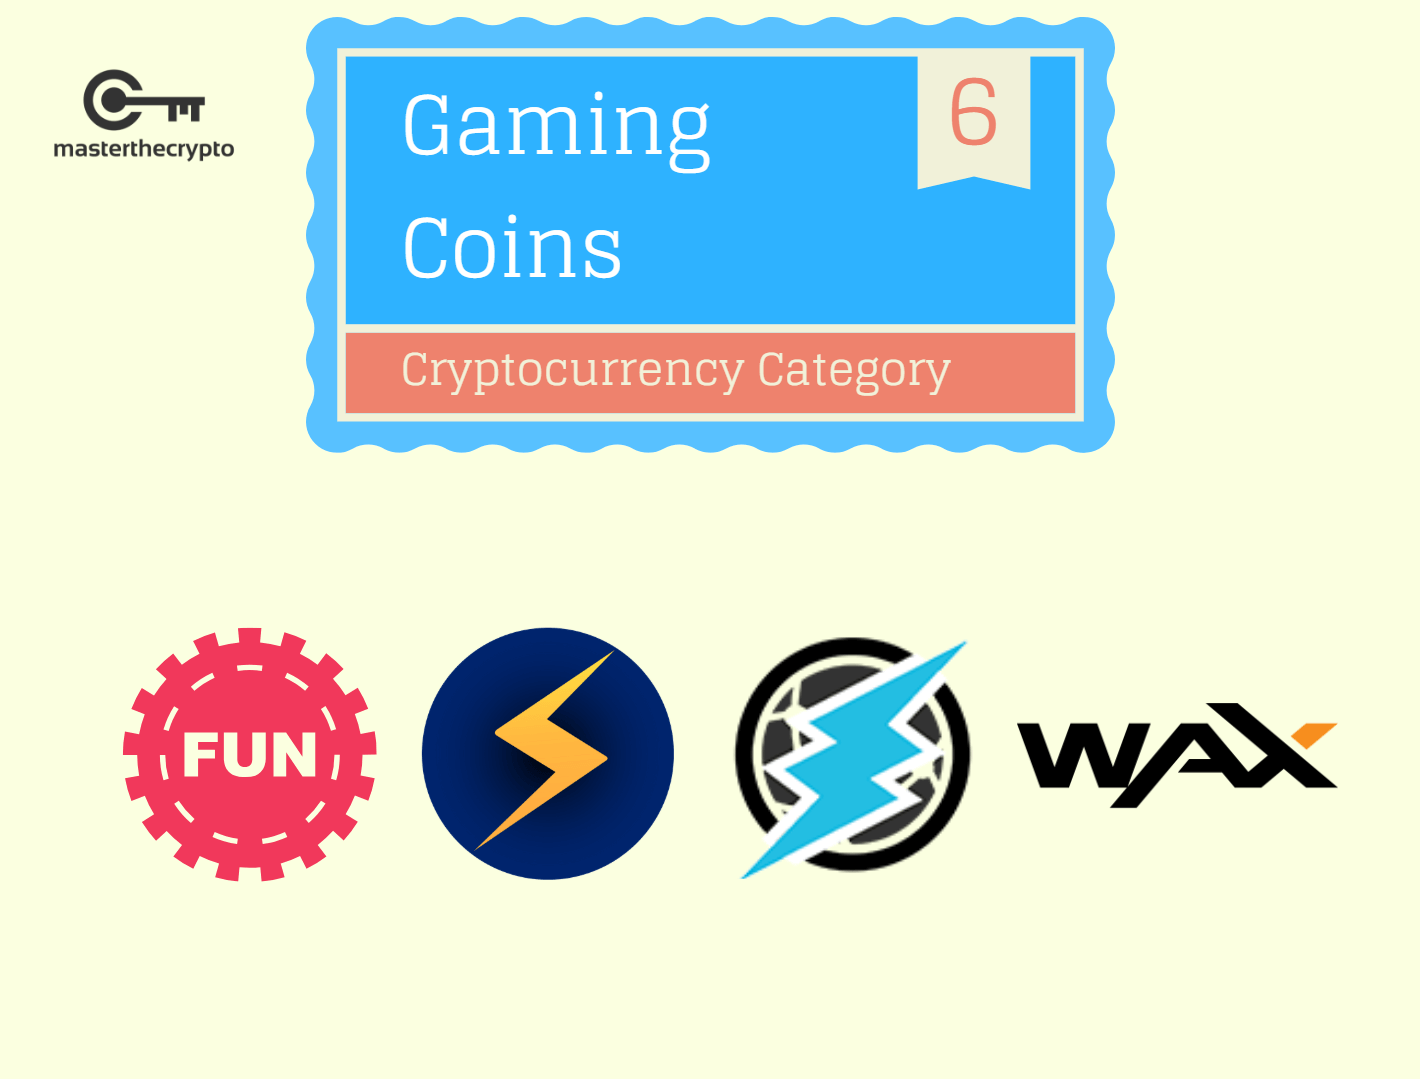 Gaming, gaming coins, gambling, gambling coins, gaming cryptocurrency